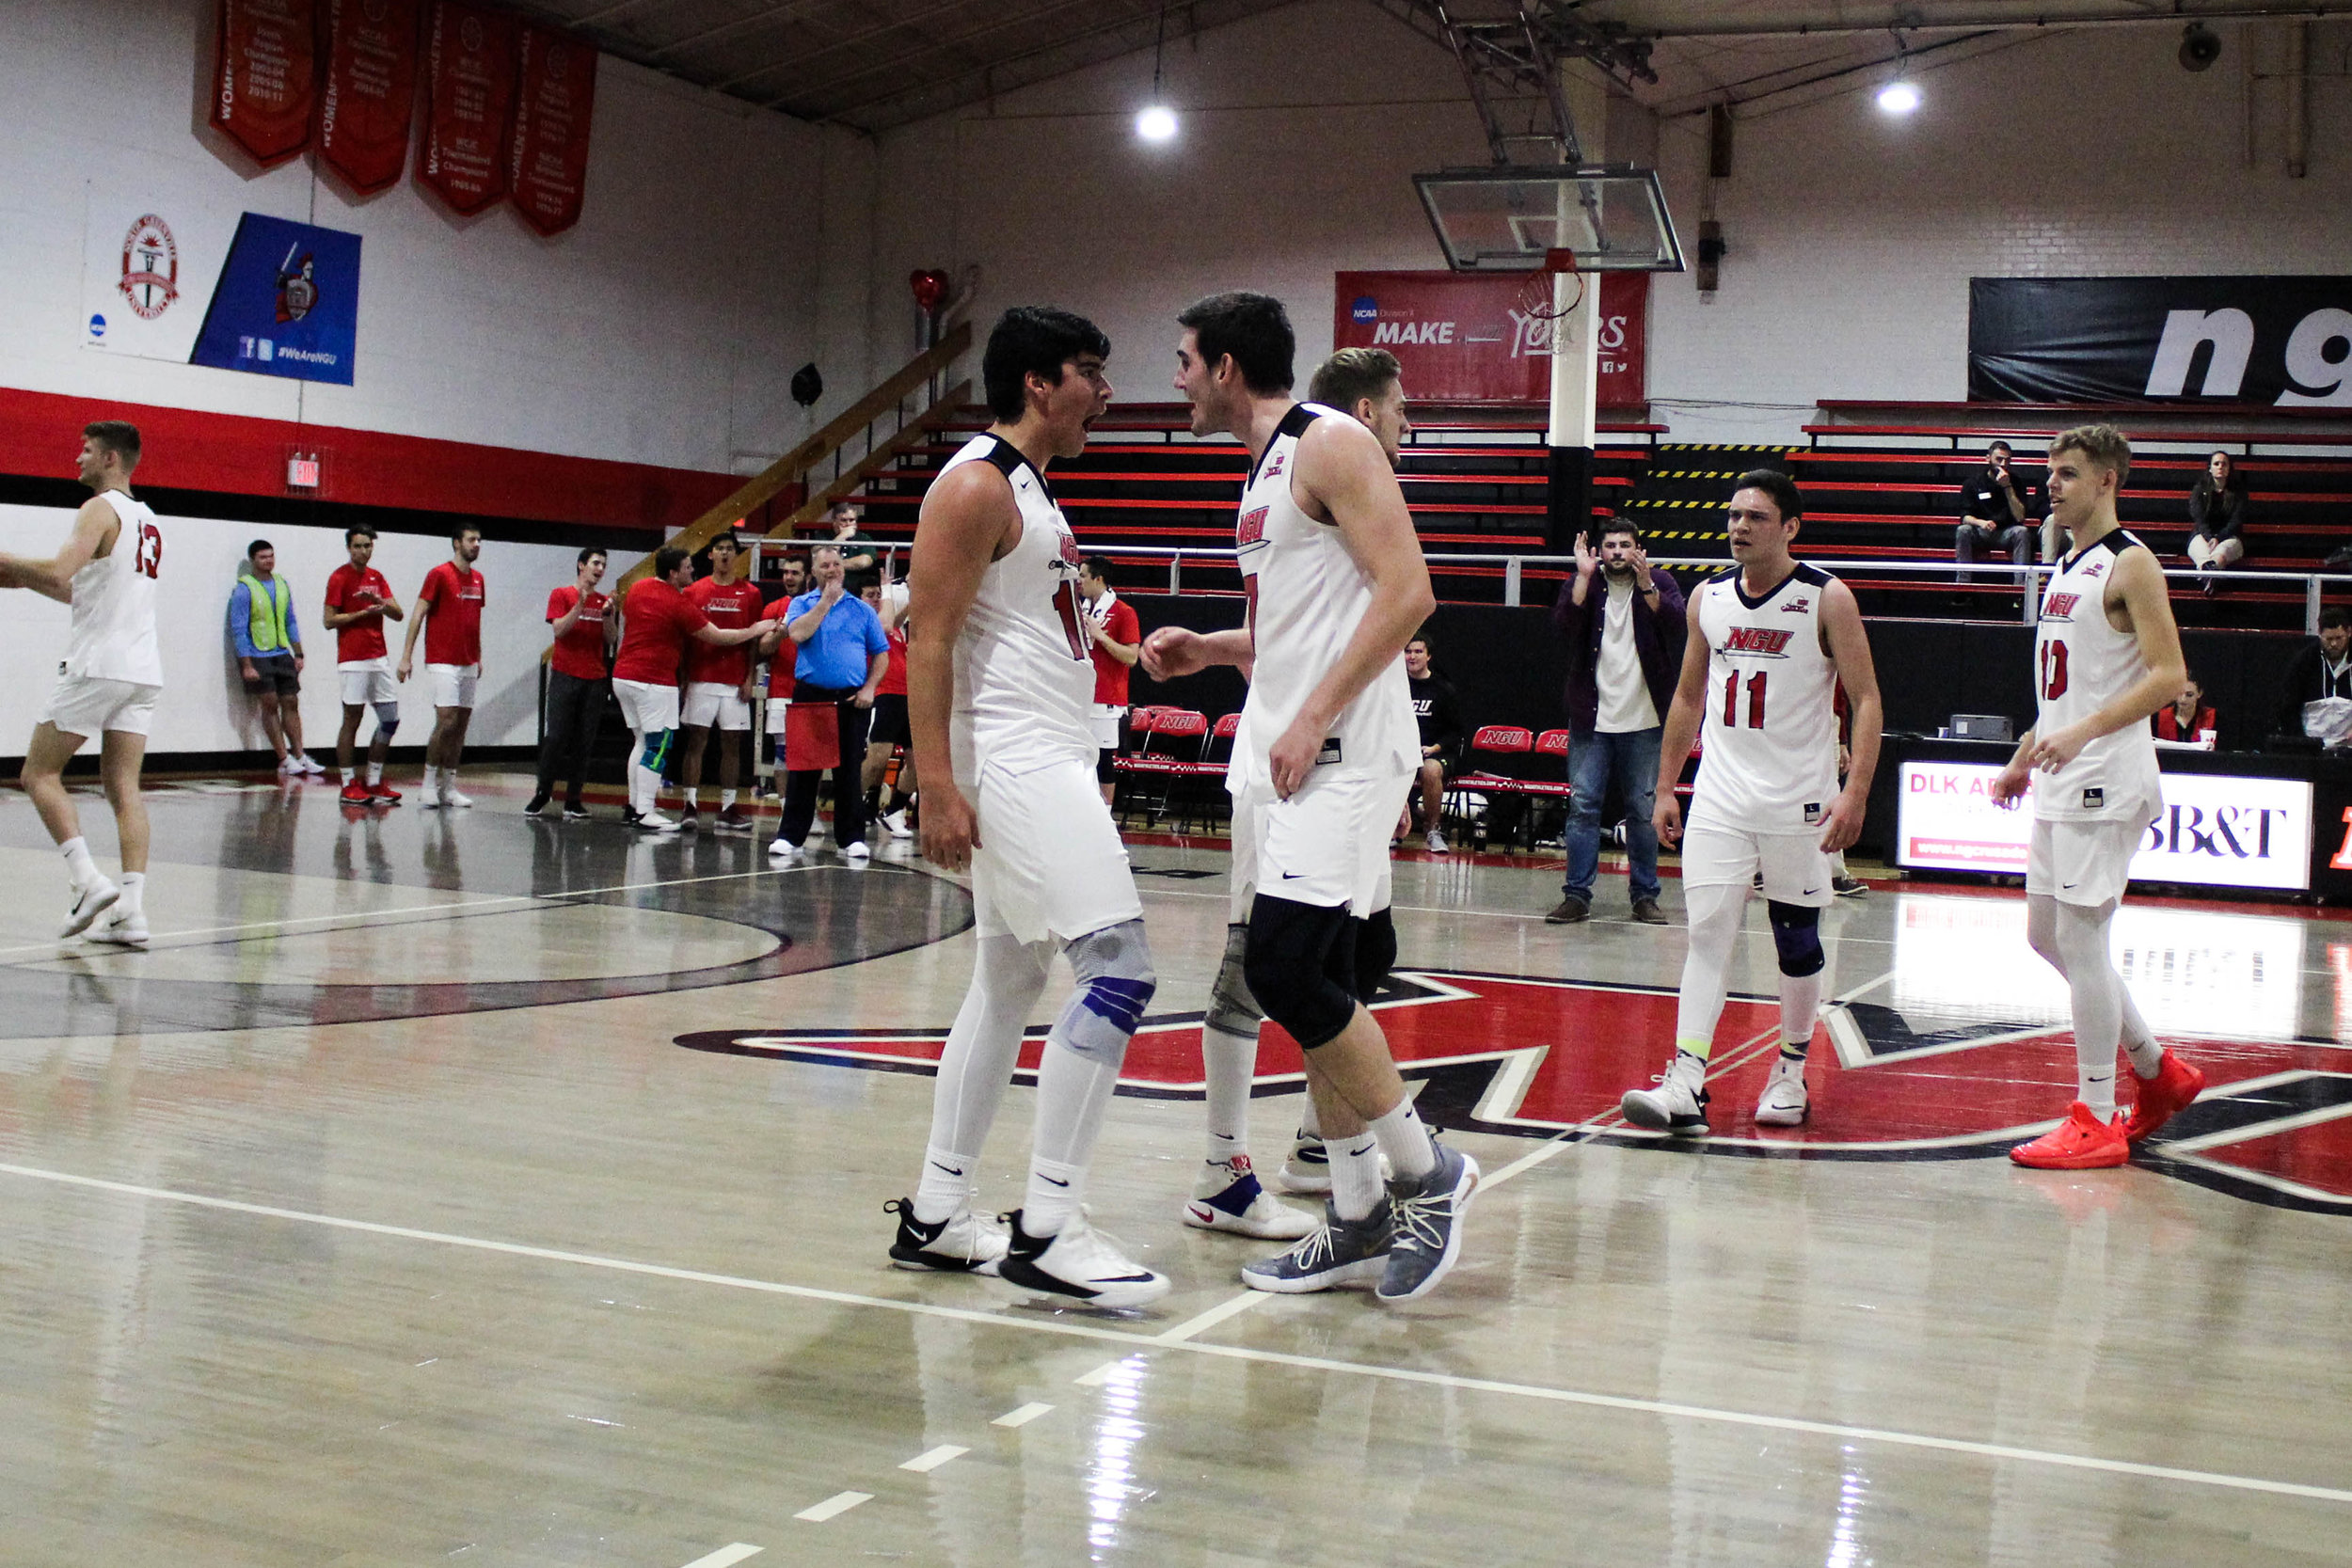 Freshman Sergio Carrillo (16) and junior Jackson Gilbert (7) celebrate together after Carrillo scored a point for the team.